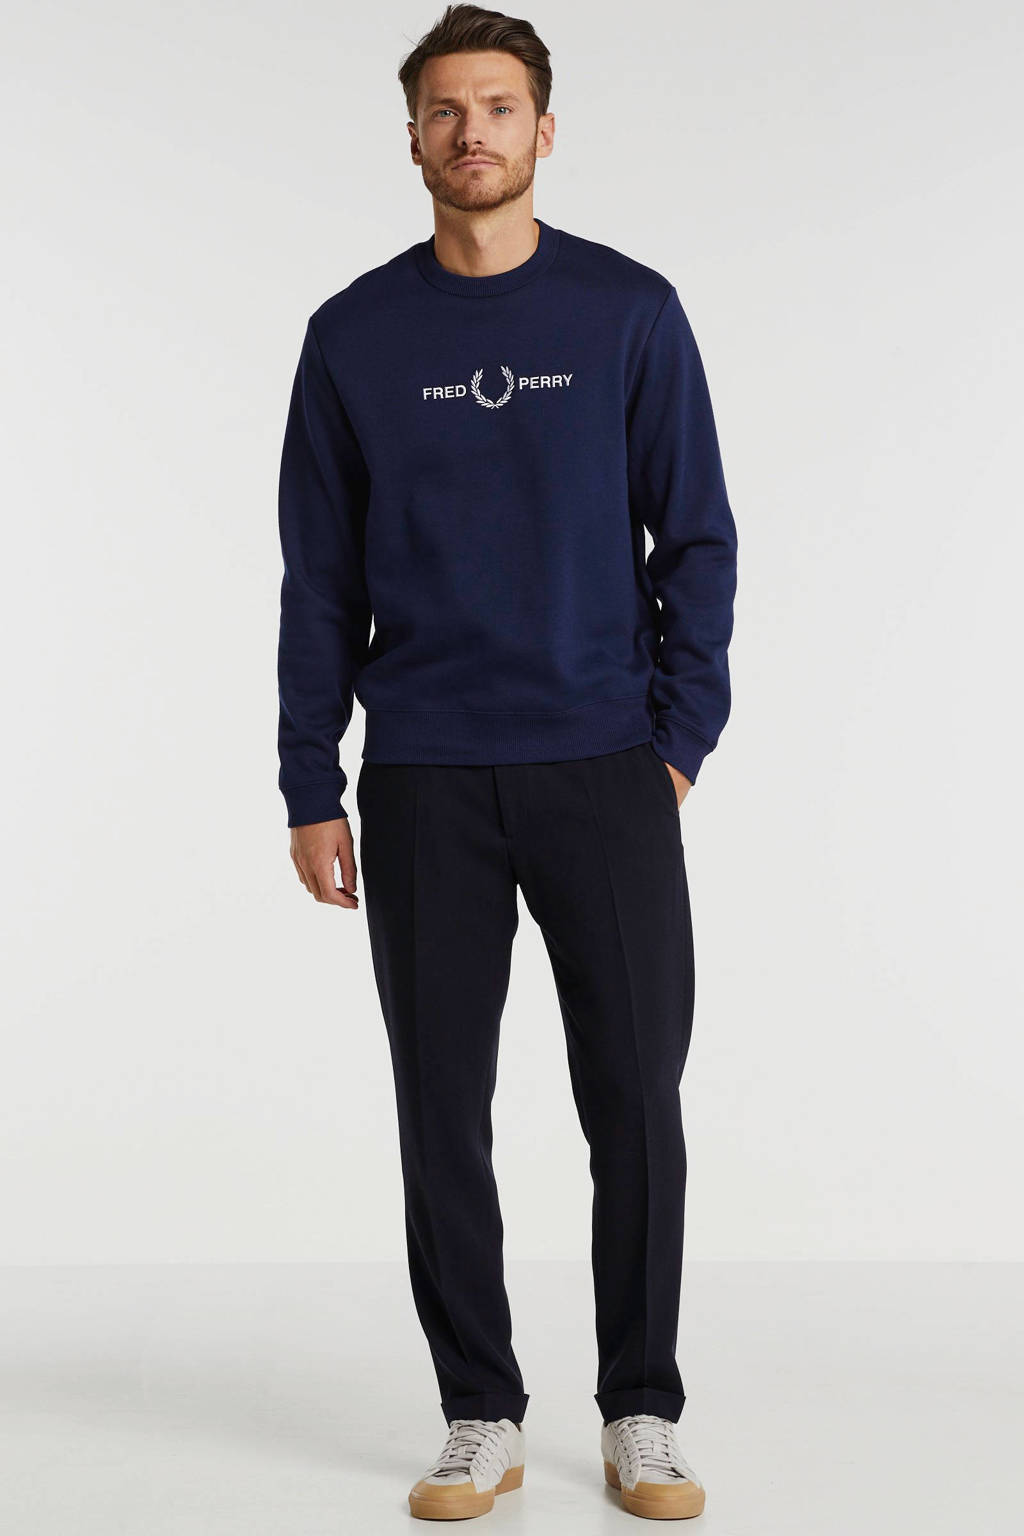 Fred Perry sweater met logo donkerblauw, Donkerblauw